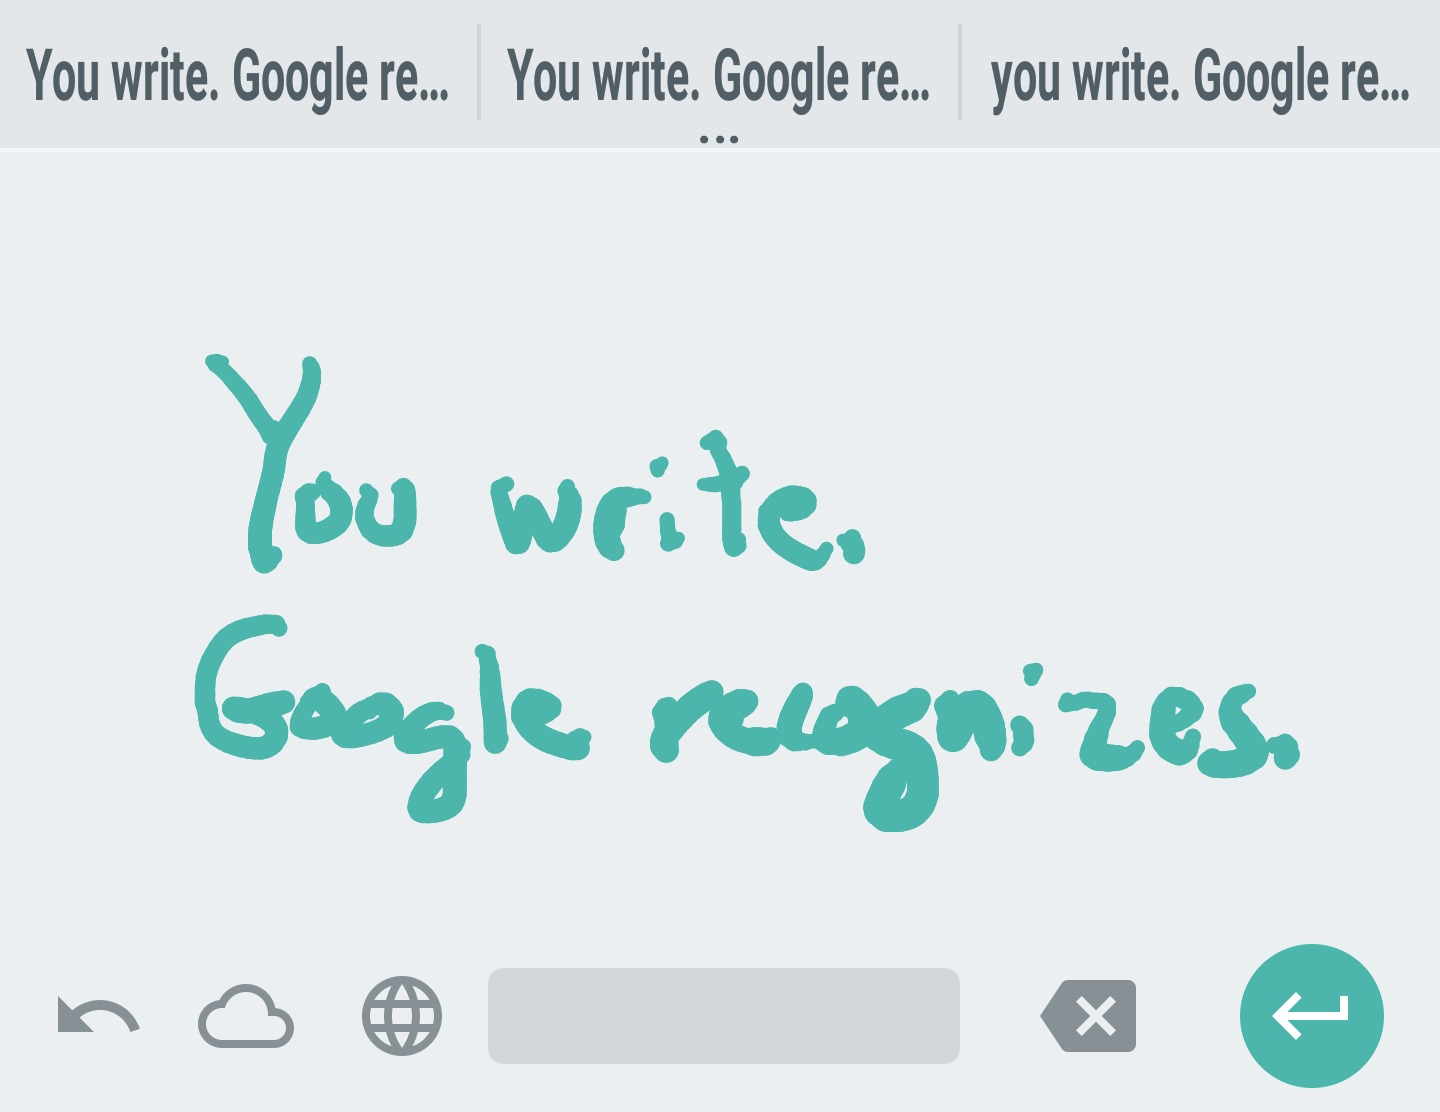 Convert your scribbles to text with Google's Handwriting Input app